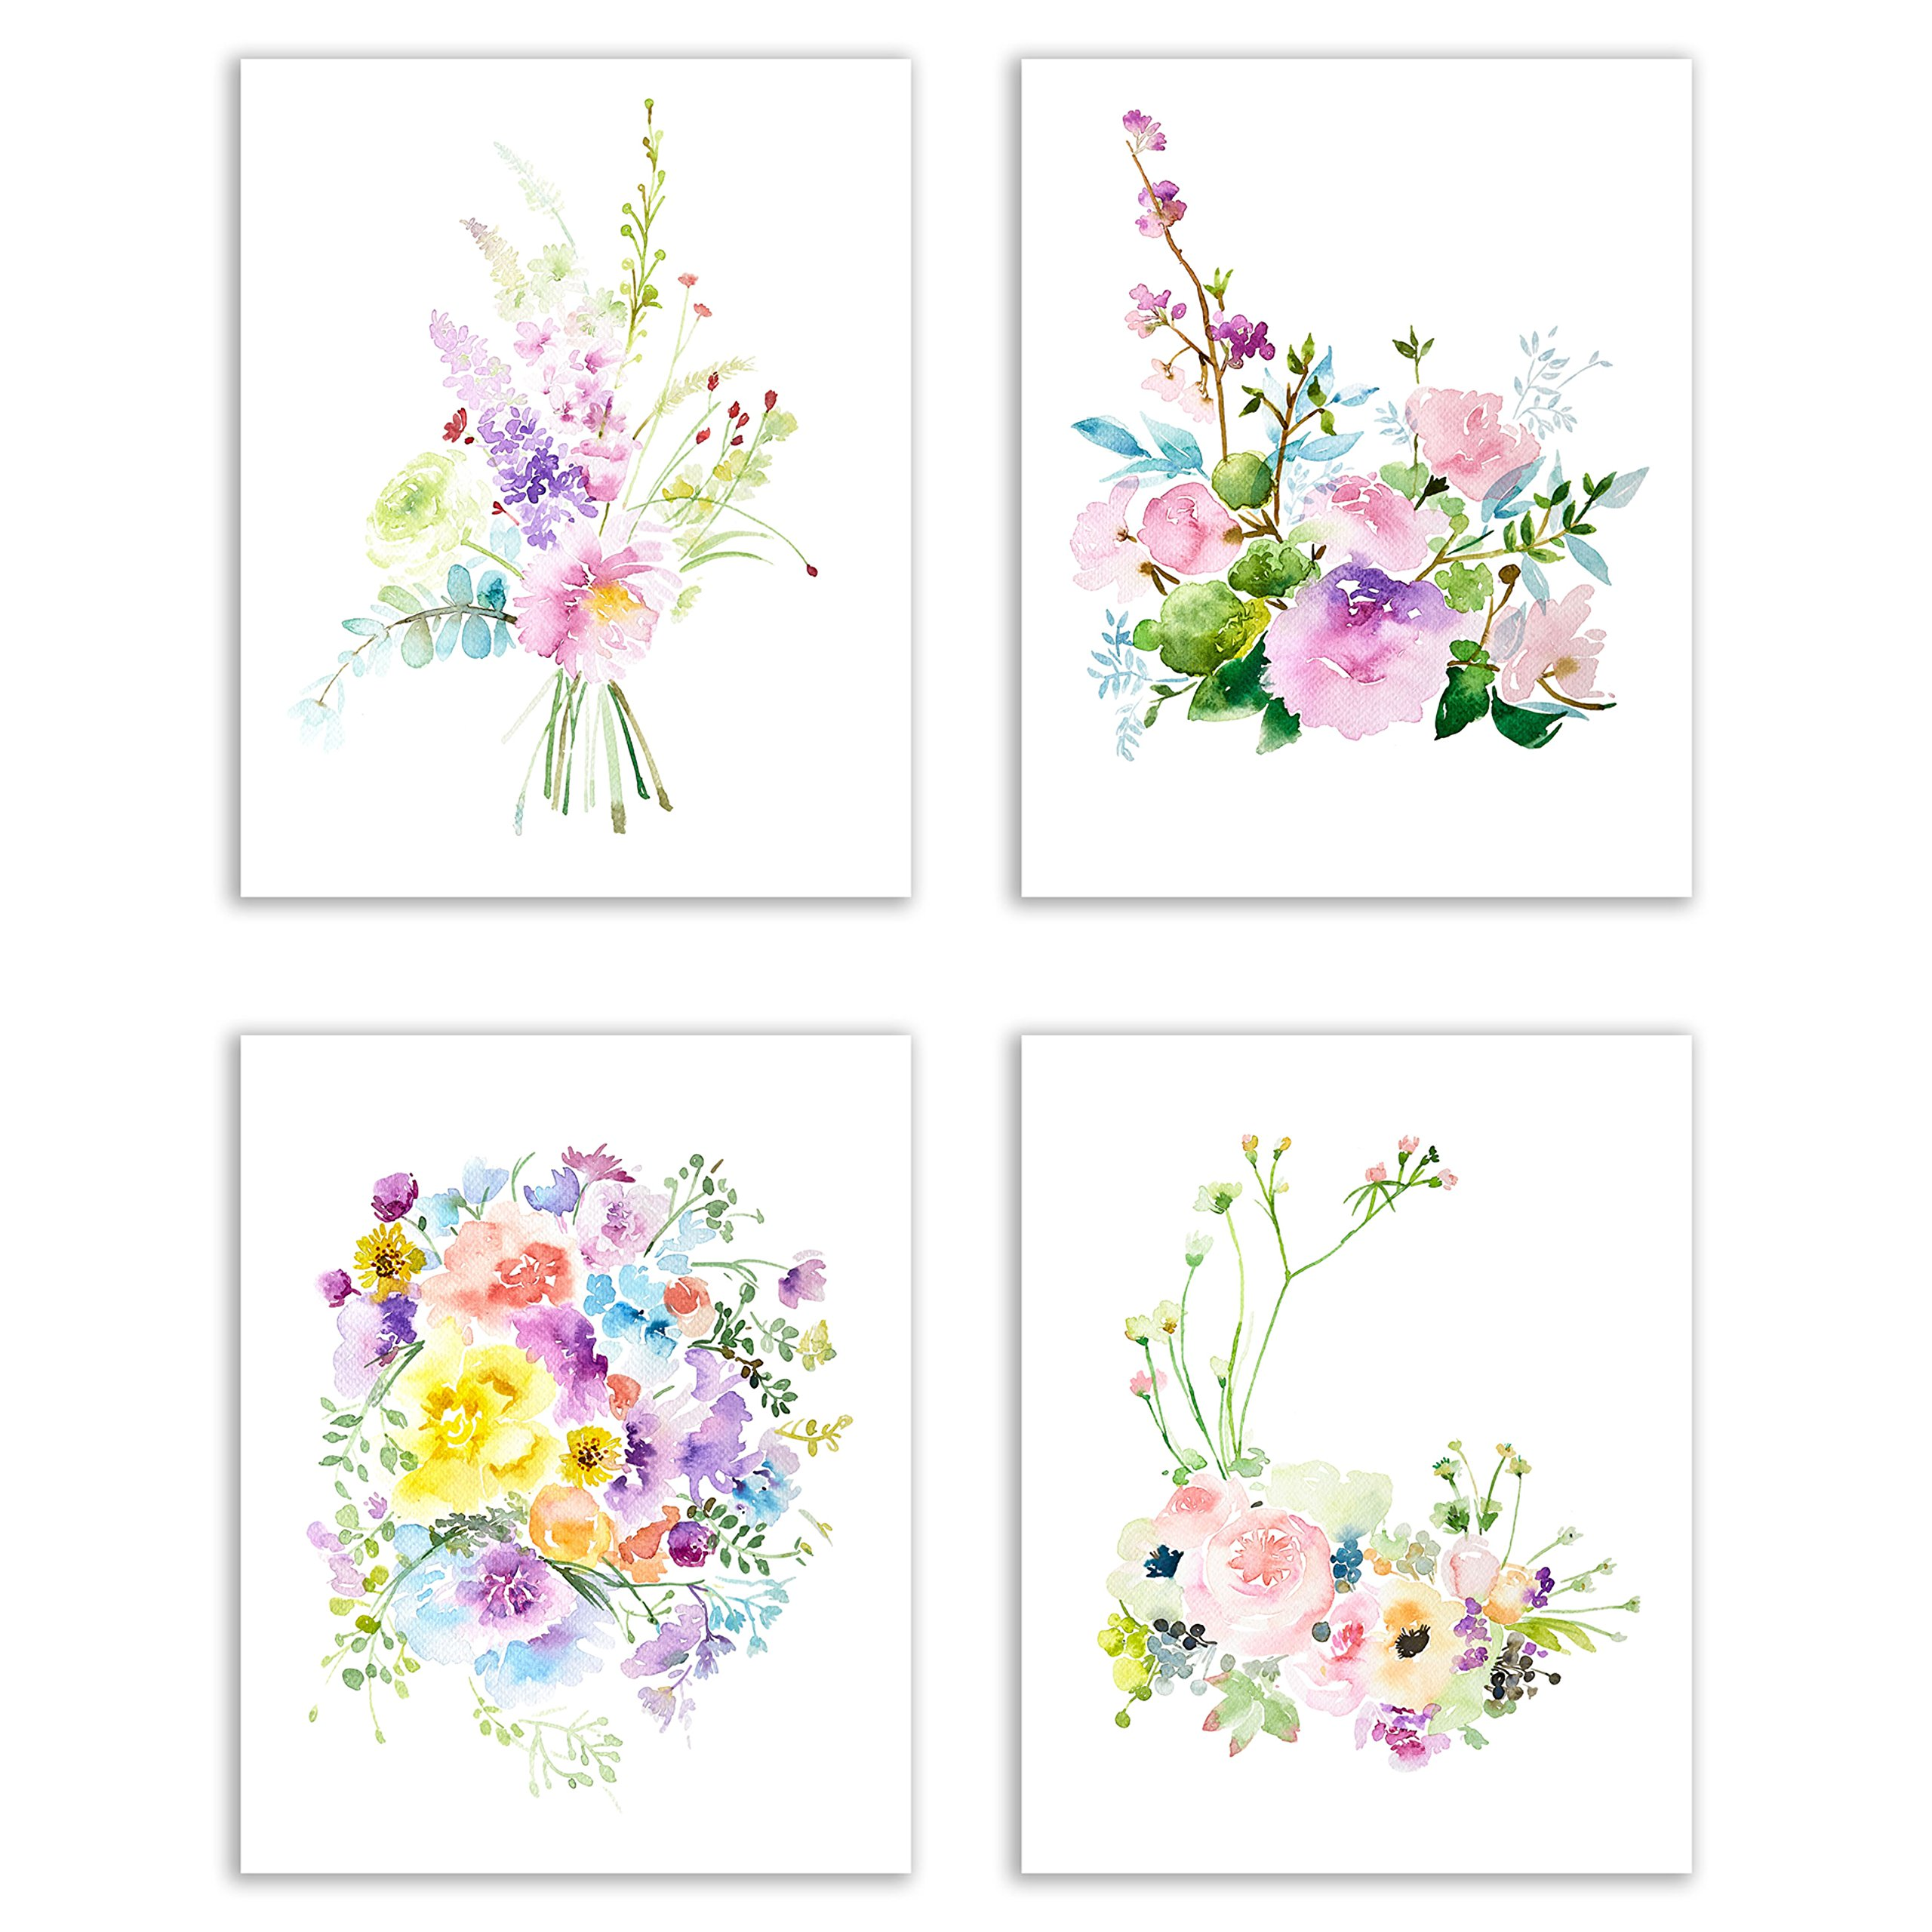 Floral Watercolor Pastel Fine Art Prints — Set of Four 8x10 Photos of Roses, Peonies, Lilacs, Dahlias, Cherry Blossoms and Delphiniums by Tangible Prints